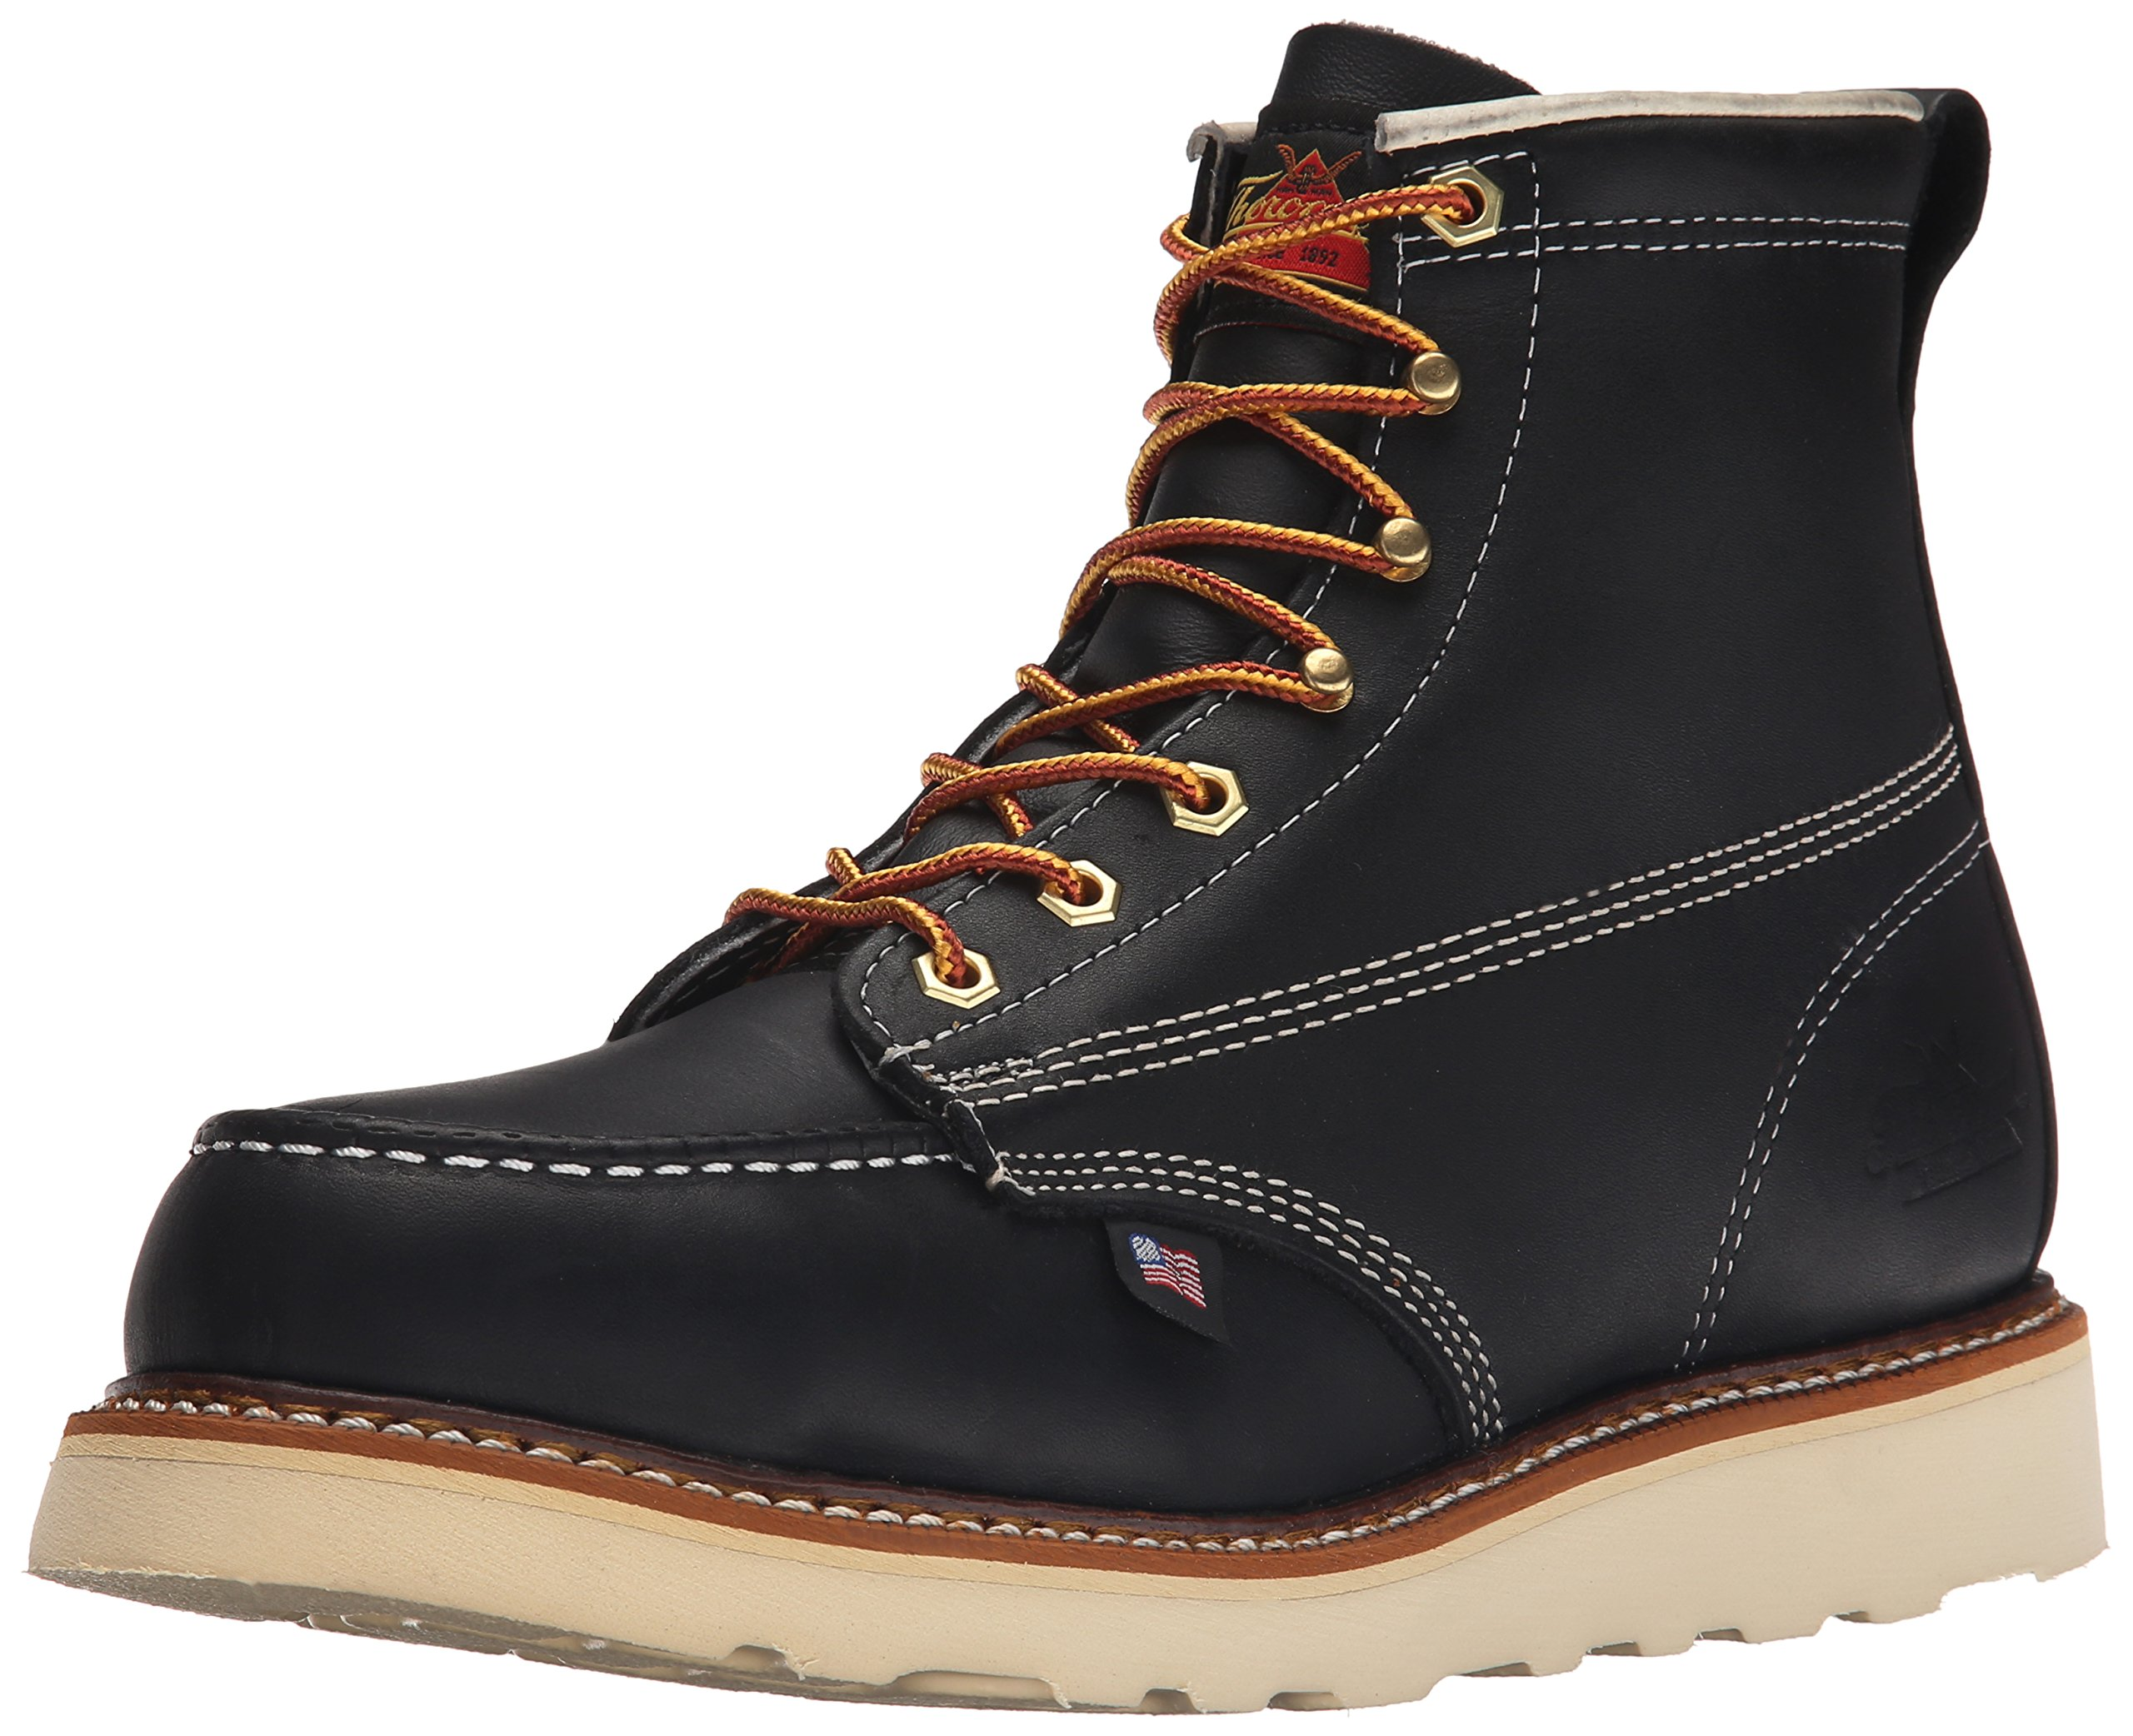 Thorogood Men's American Heritage Safety Toe Lace-Up Boot, Black, 10.5 2E US